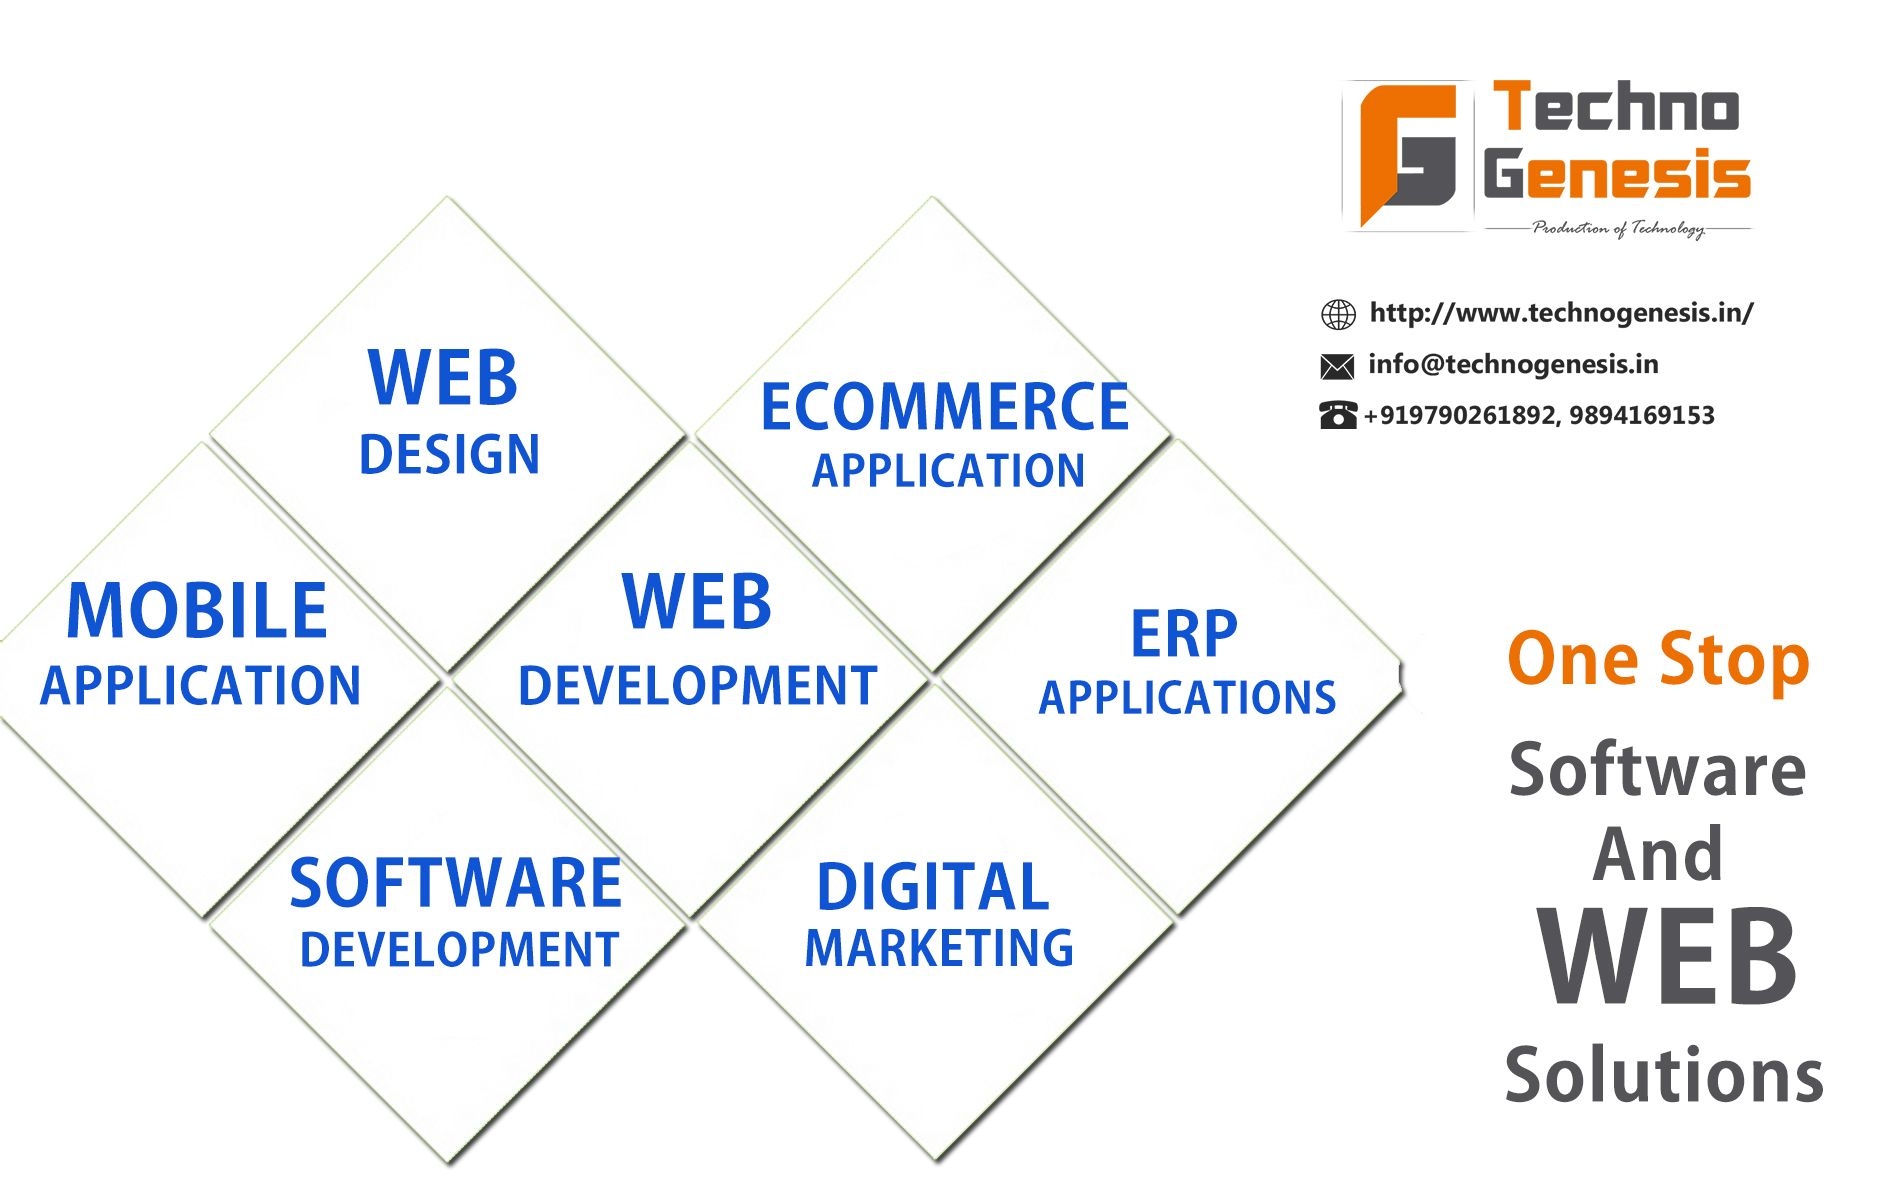 Difference Between Web Based Application And Enterprise Application